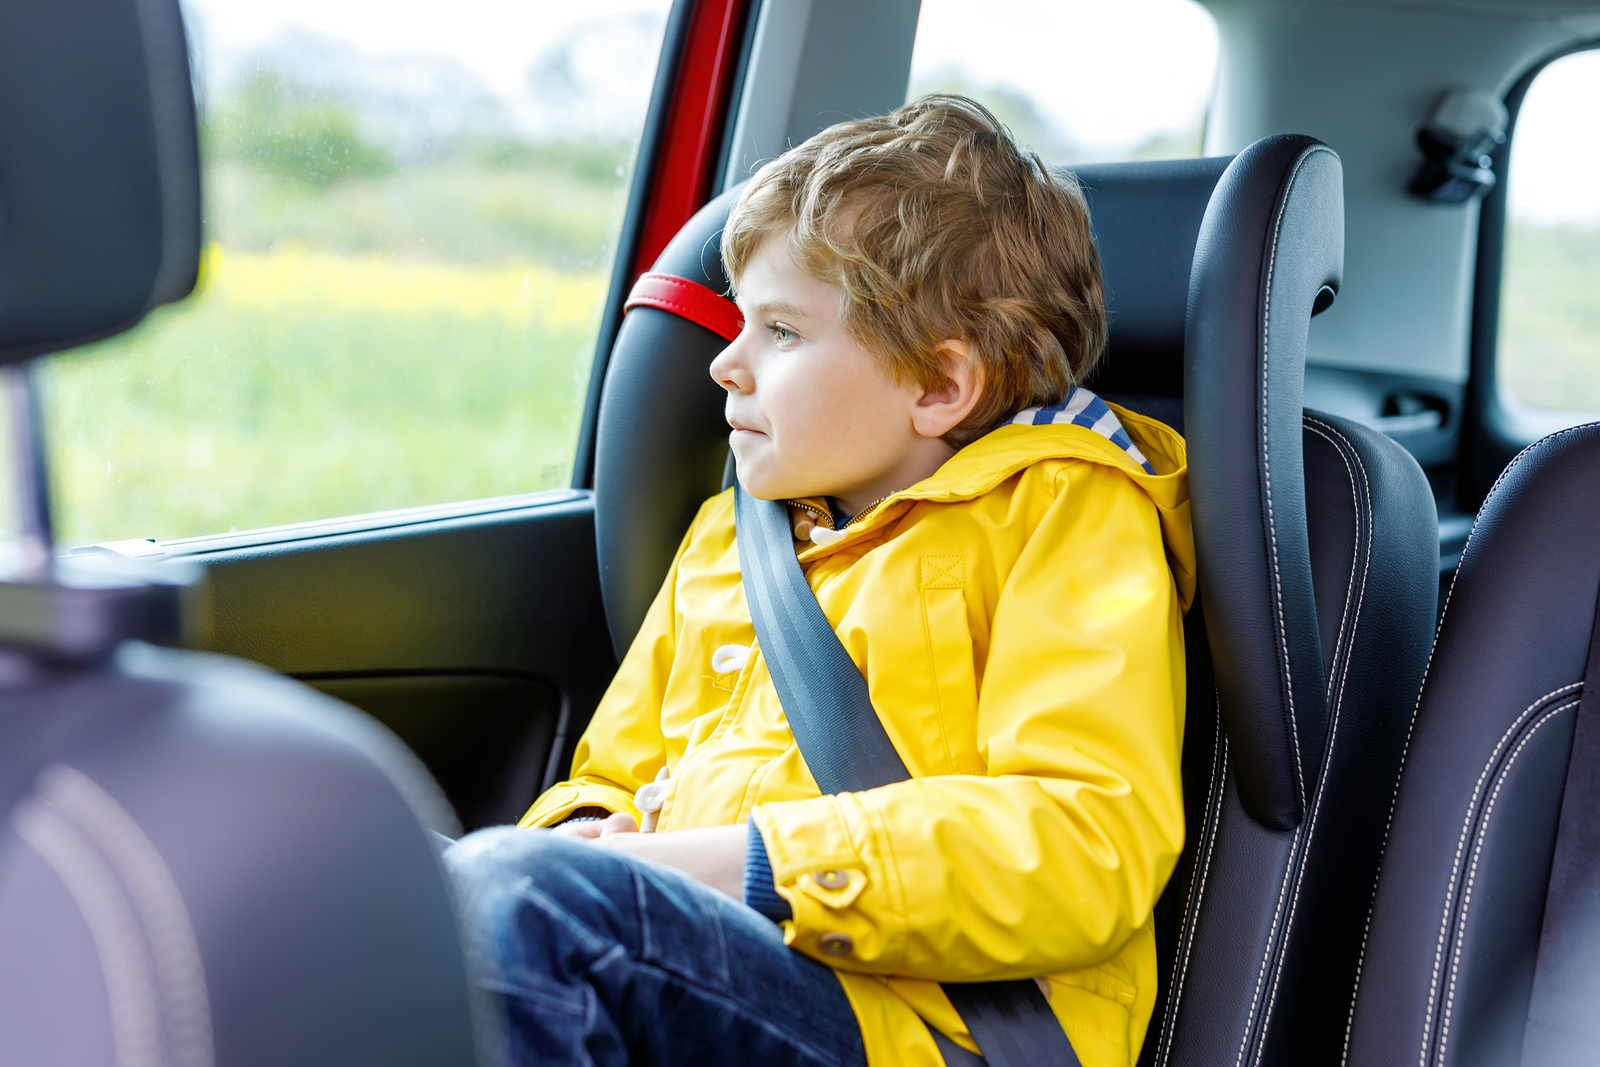 New Car Seat Recomdations Advise Rear-facing Until 2-Years-Old ...